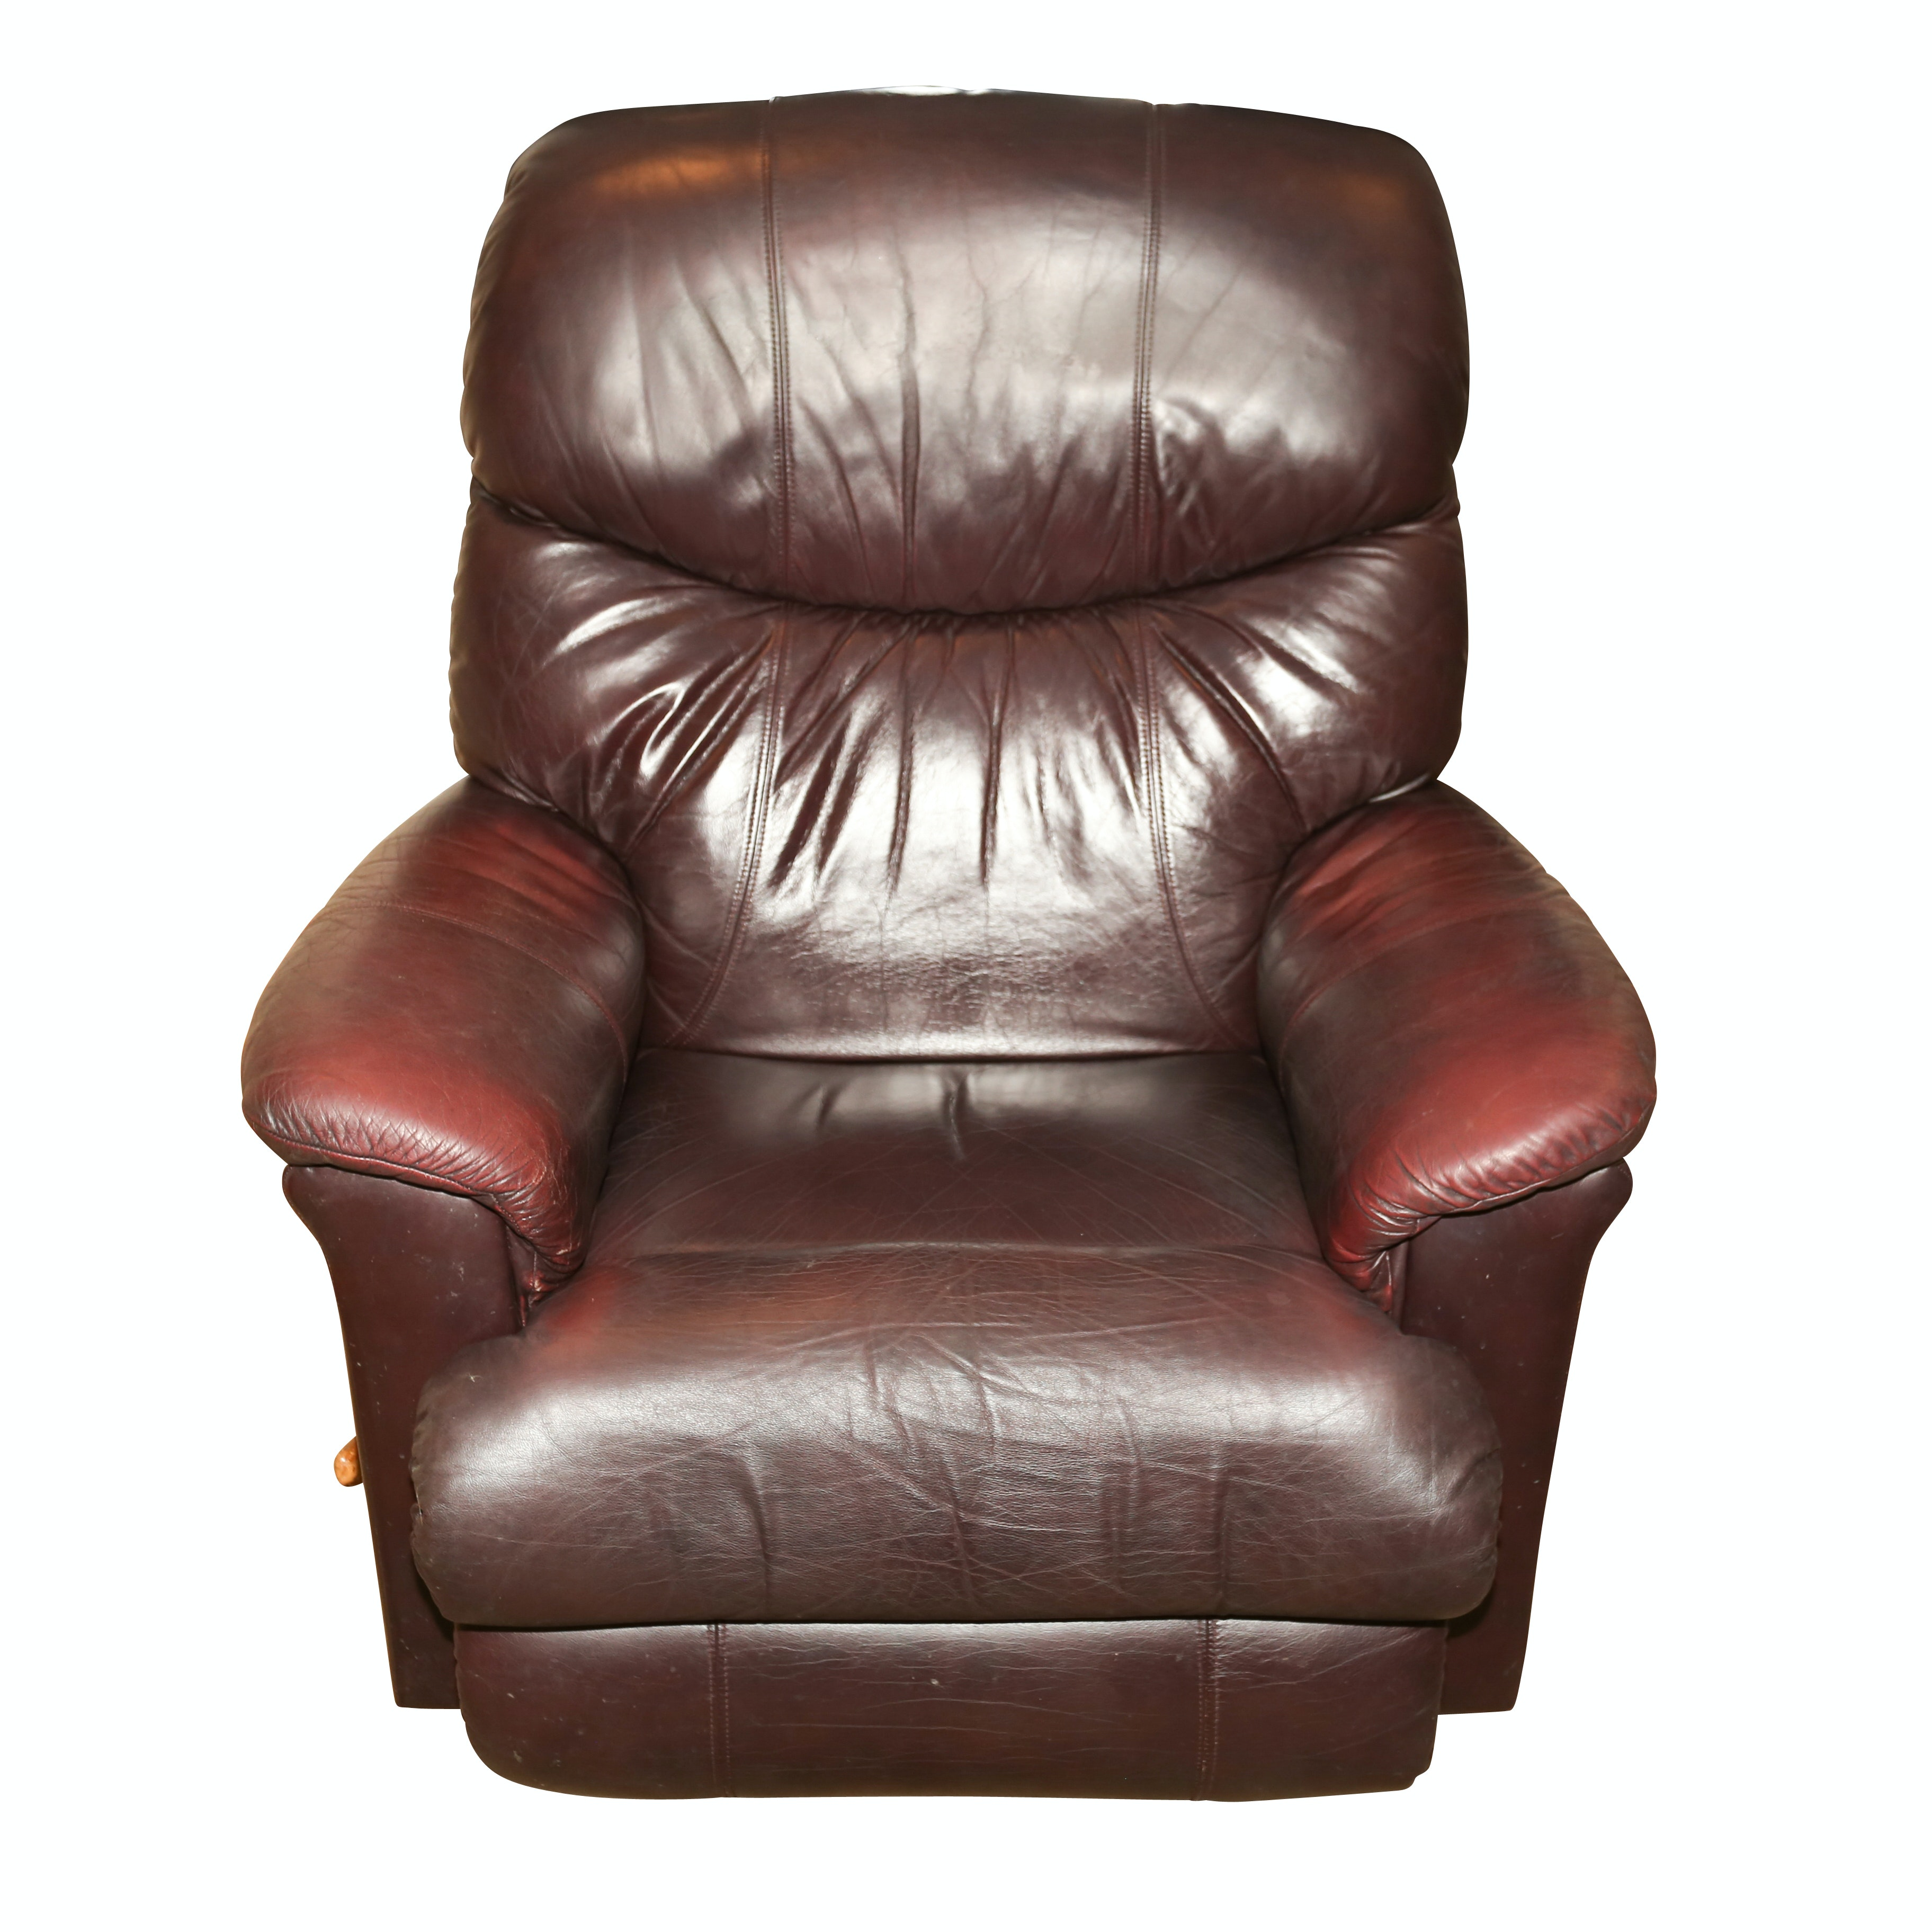 Leather Upholstered Swivel Recliner by La-Z-Boy, 21st Century